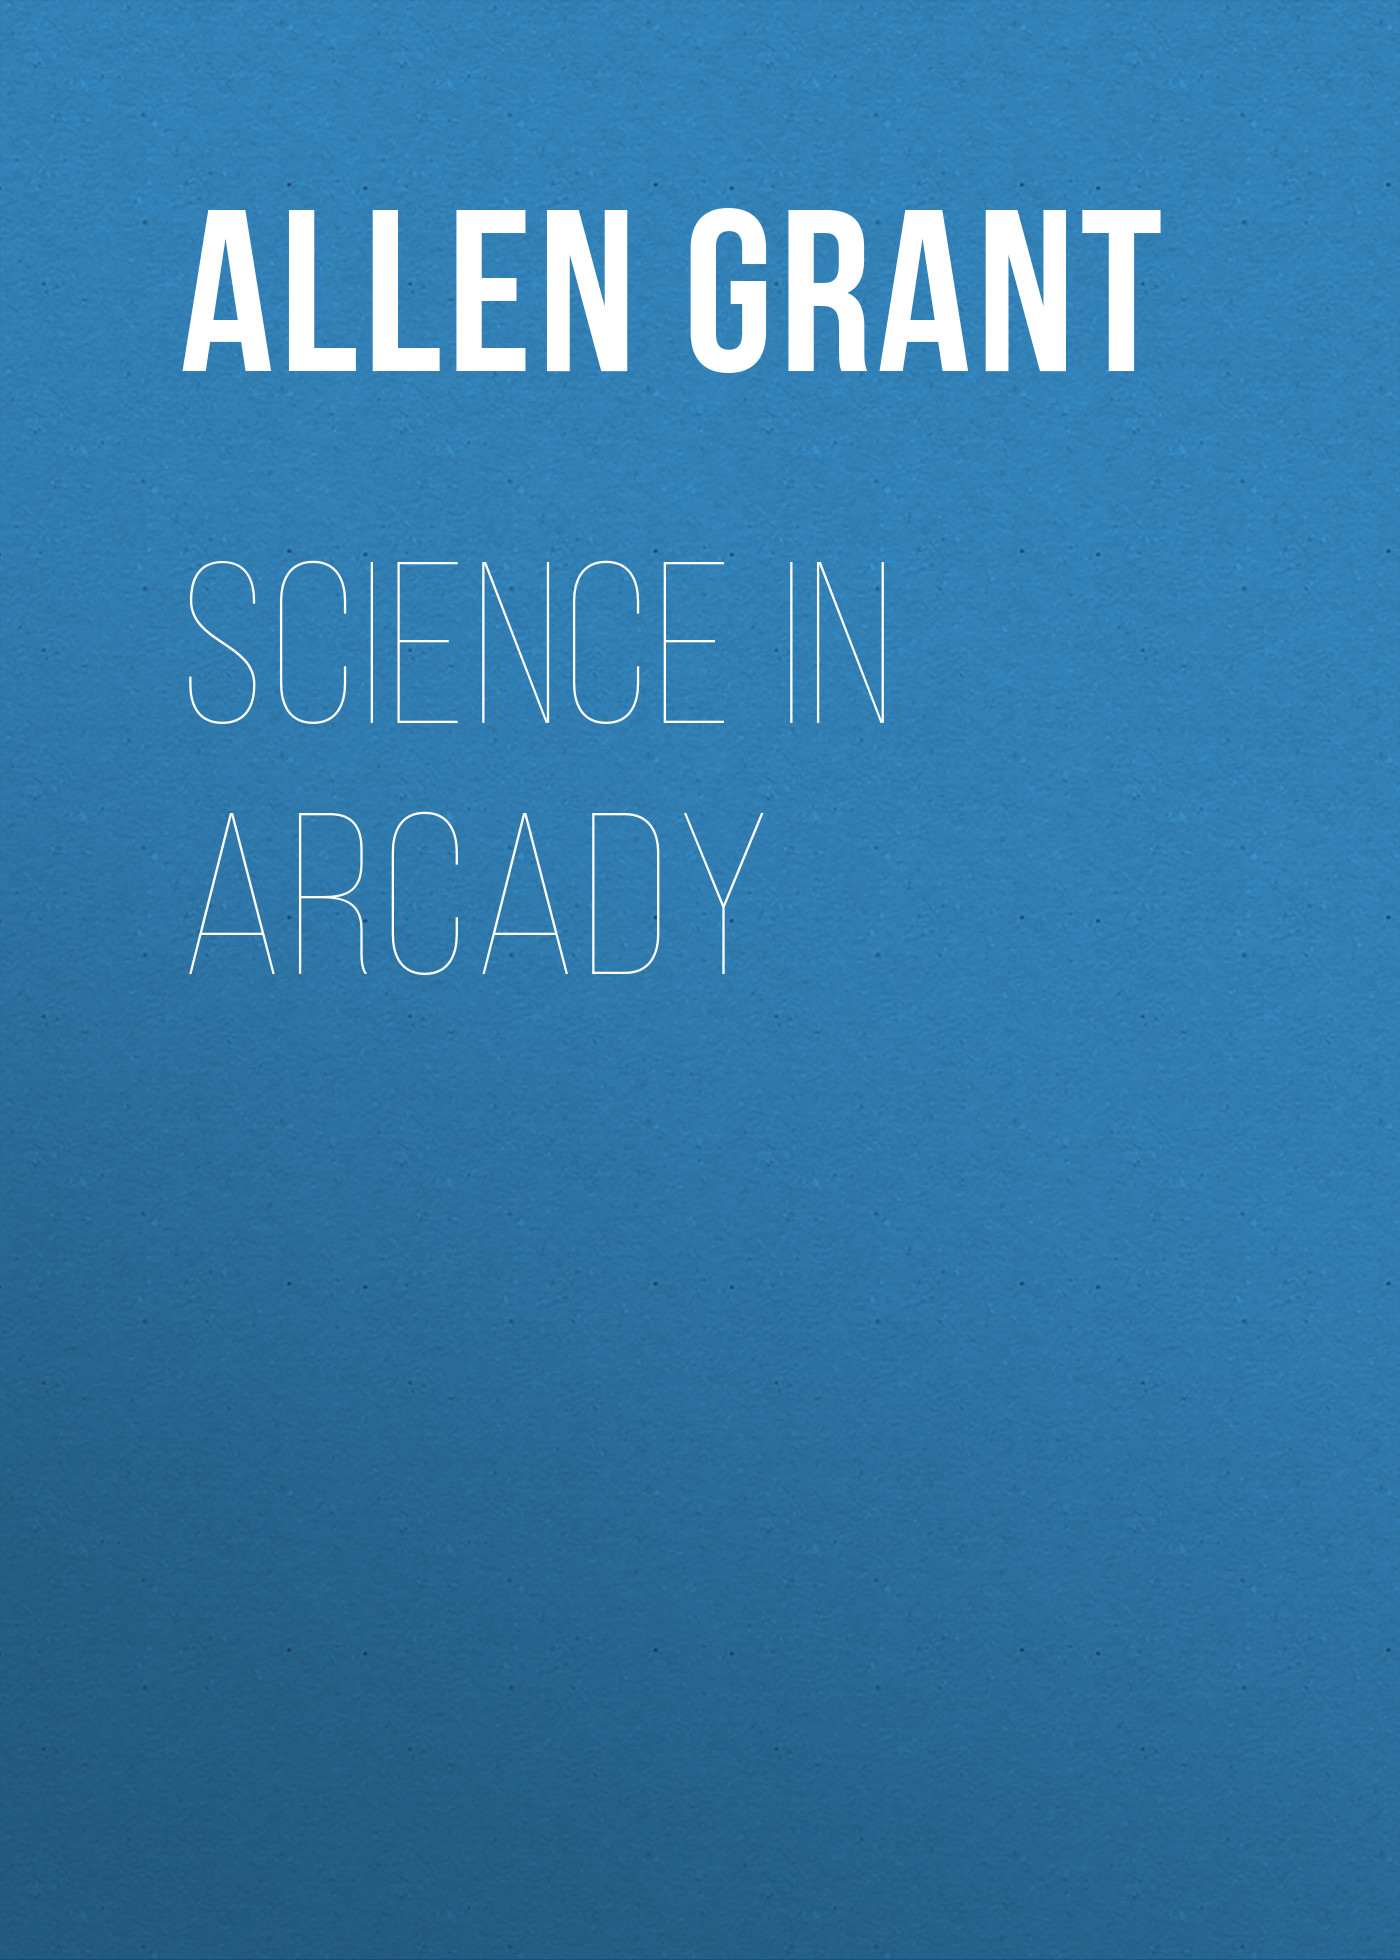 Allen Grant Science in Arcady heterogeneity in matching grant effects